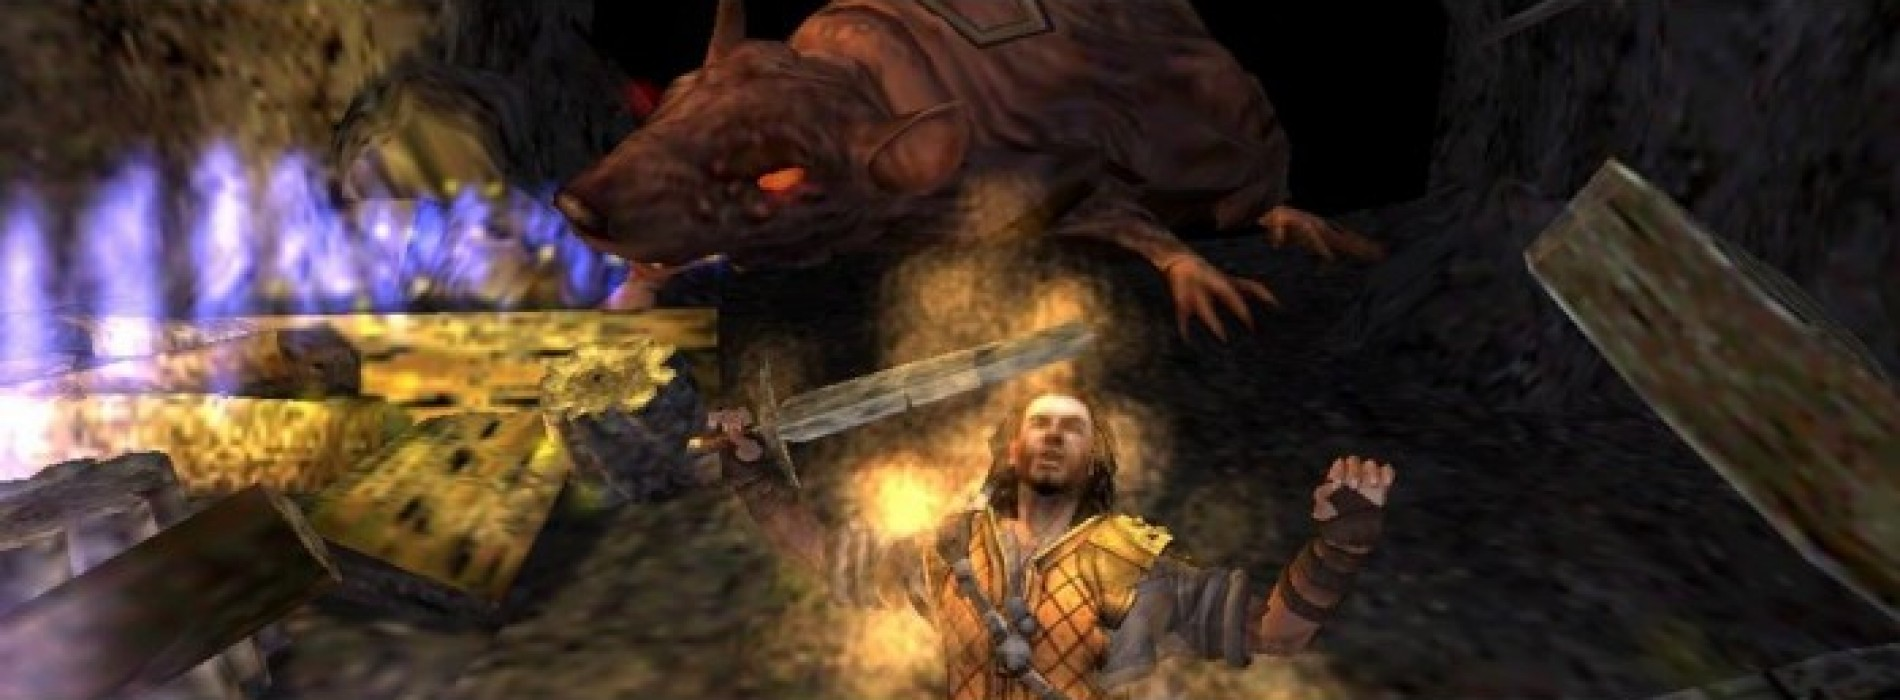 The Bard's Tale free today on Amazon Appstore